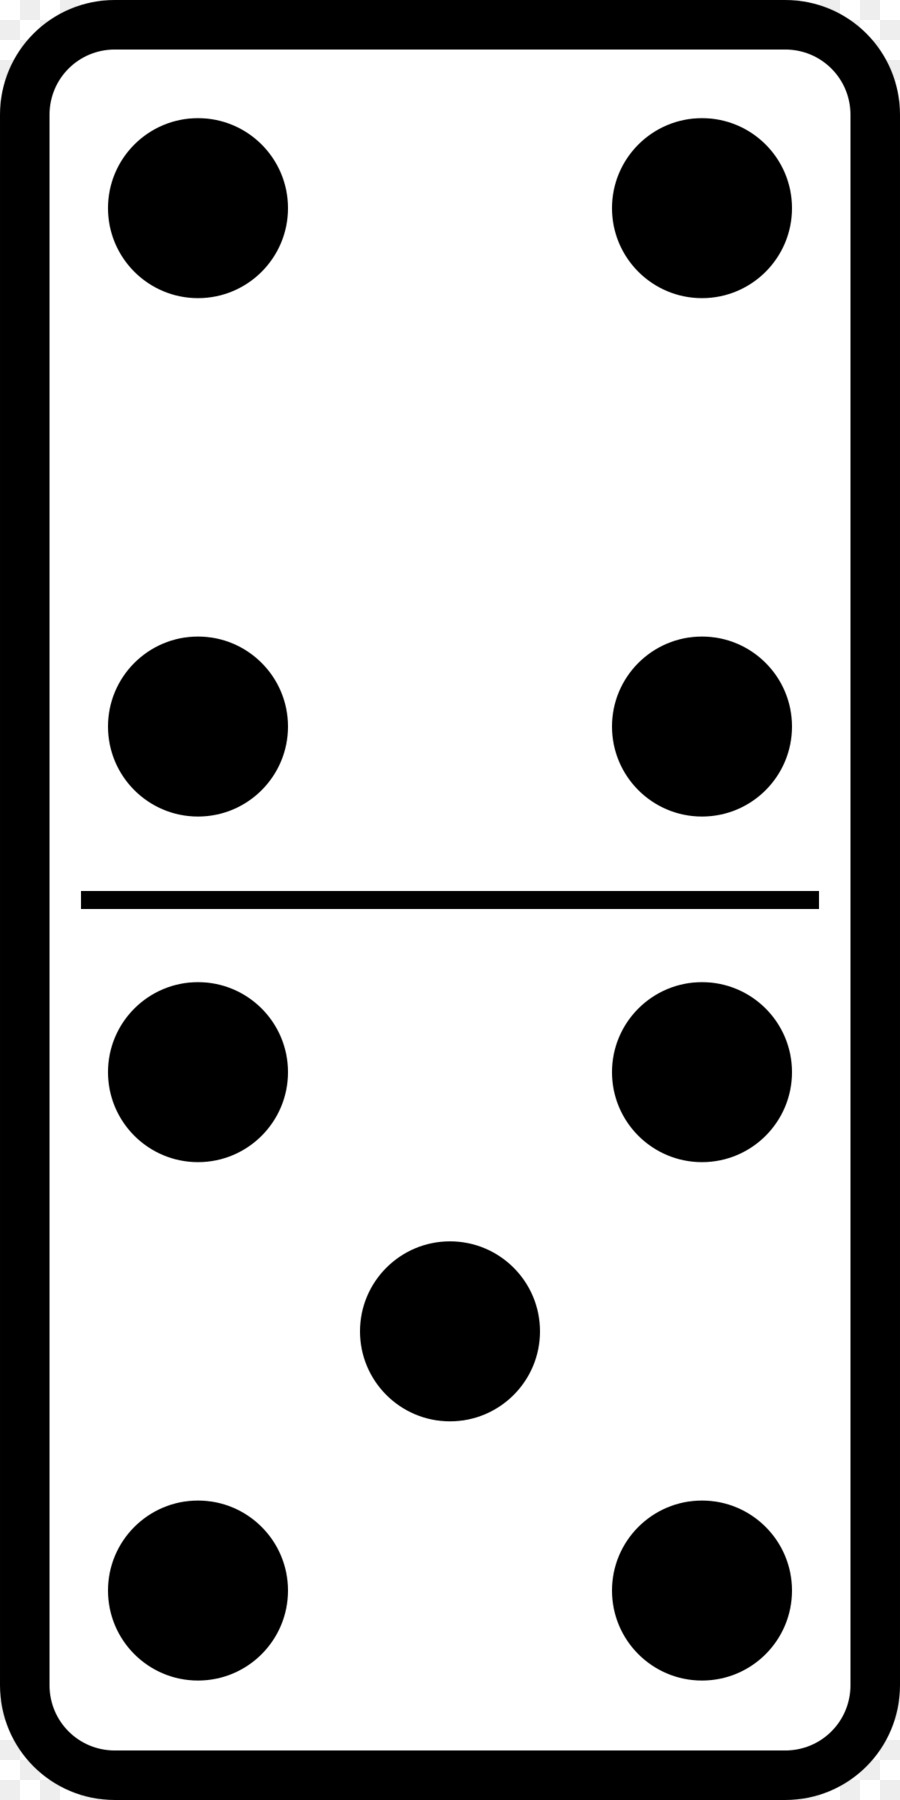 Black and white clipart domino dots picture royalty free download Black Line Background clipart - White, Black, Pattern, transparent ... picture royalty free download